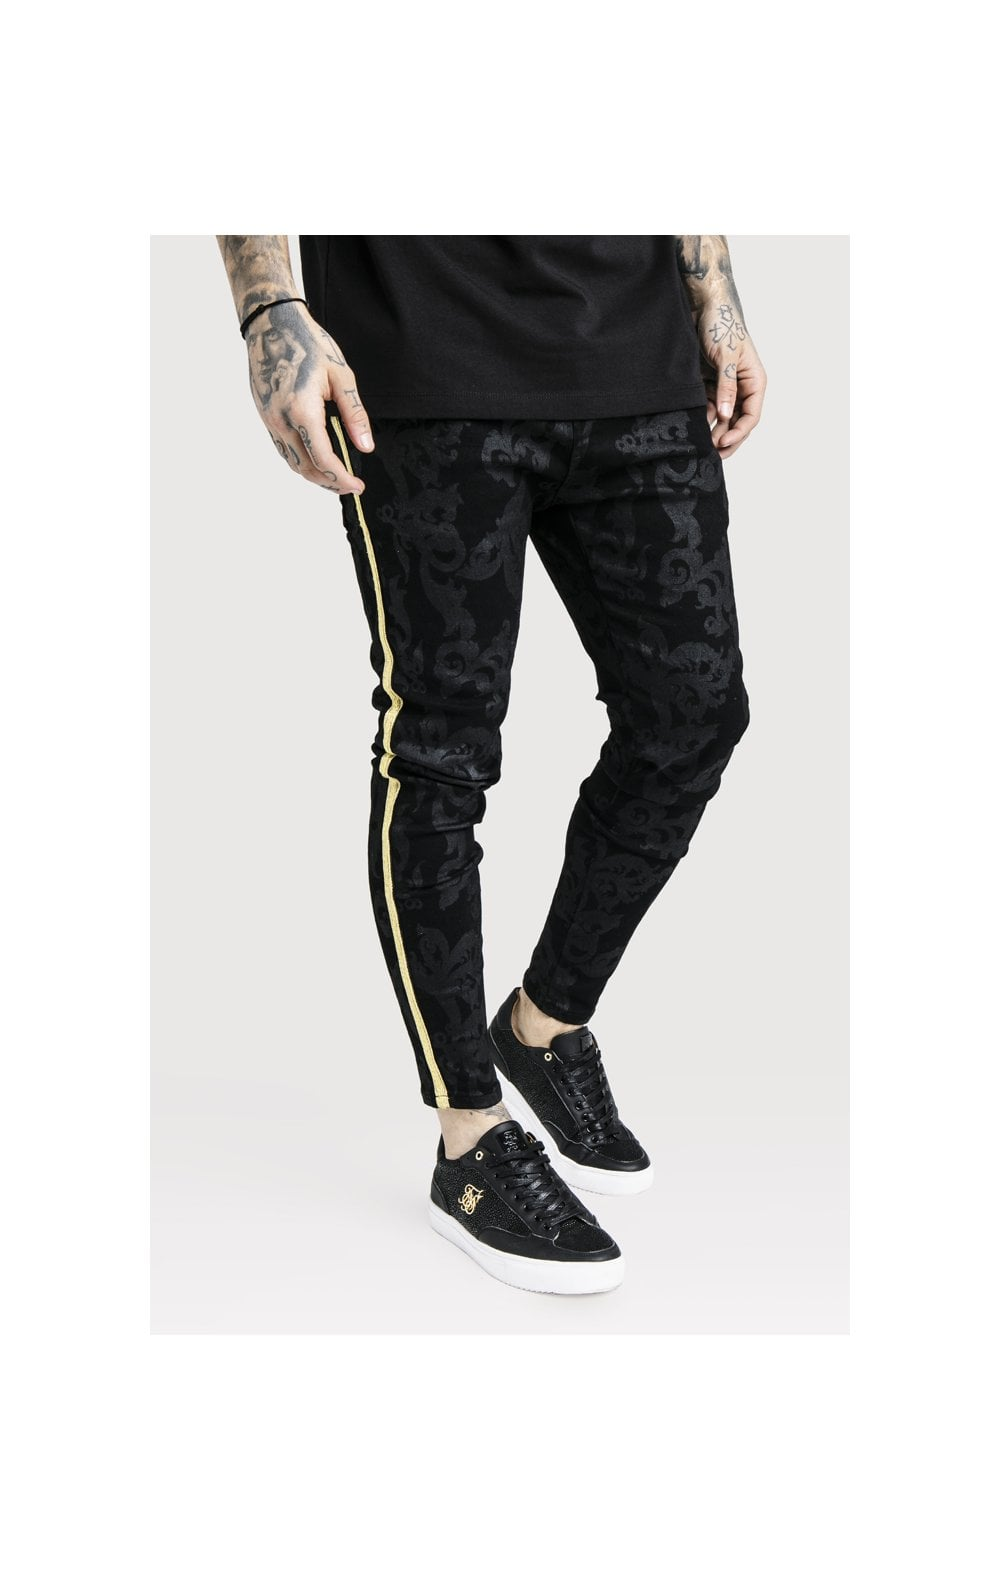 SikSilk x Dani Alves Low Rise Skinny Denims - Black (1)